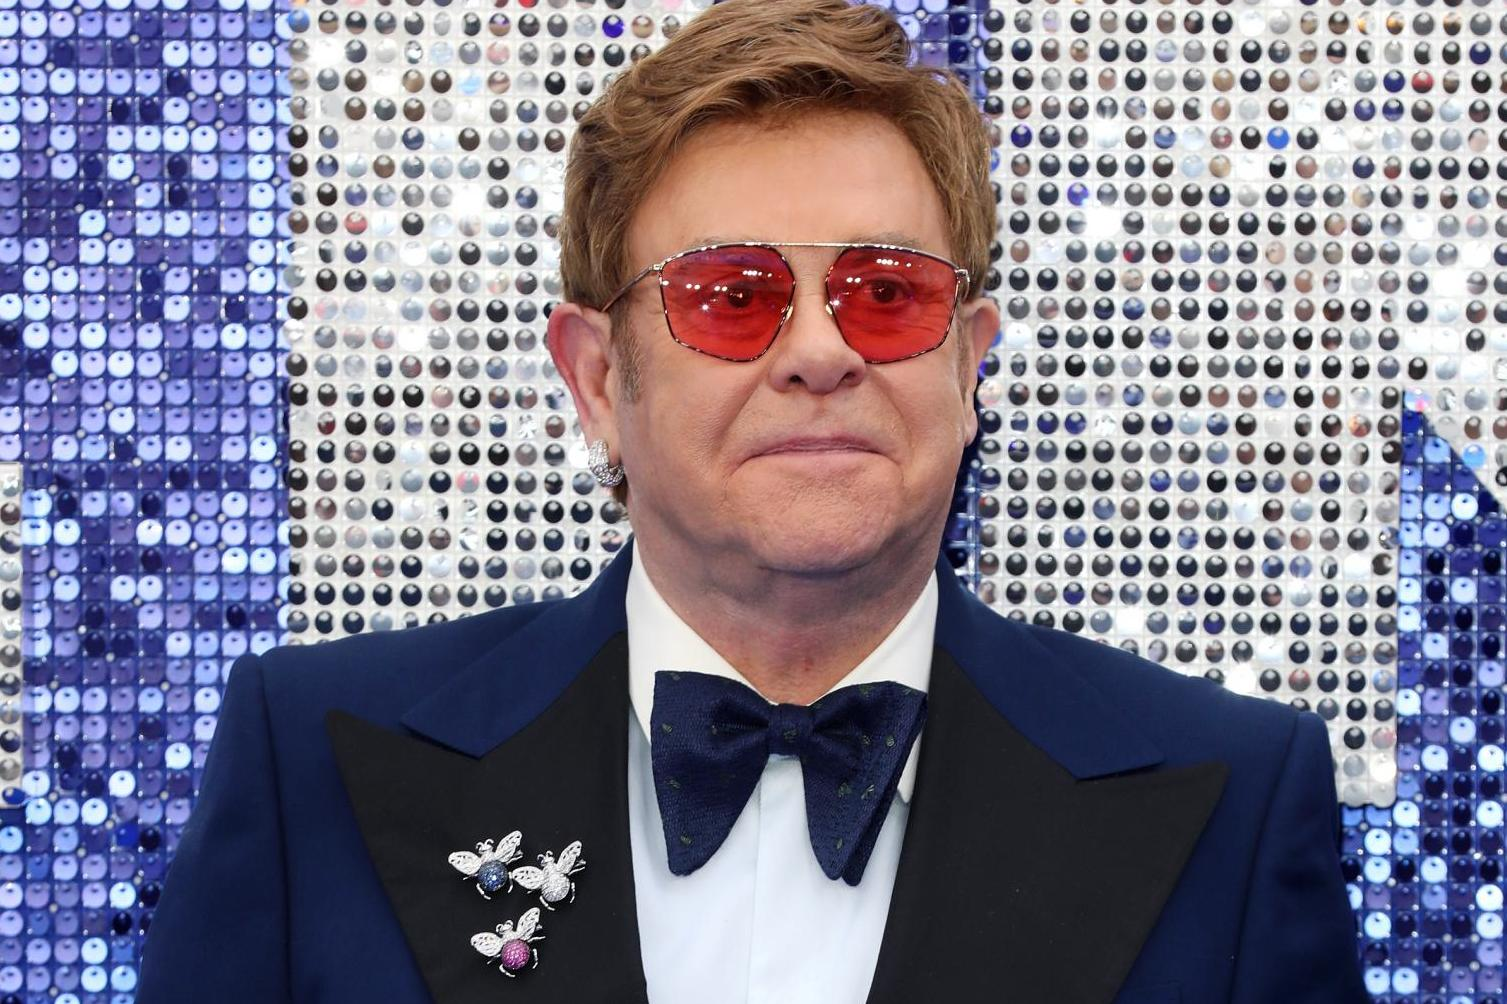 Elton John defends Ellen DeGeneres' friendship with George W Bush: 'I admire her for standing up'